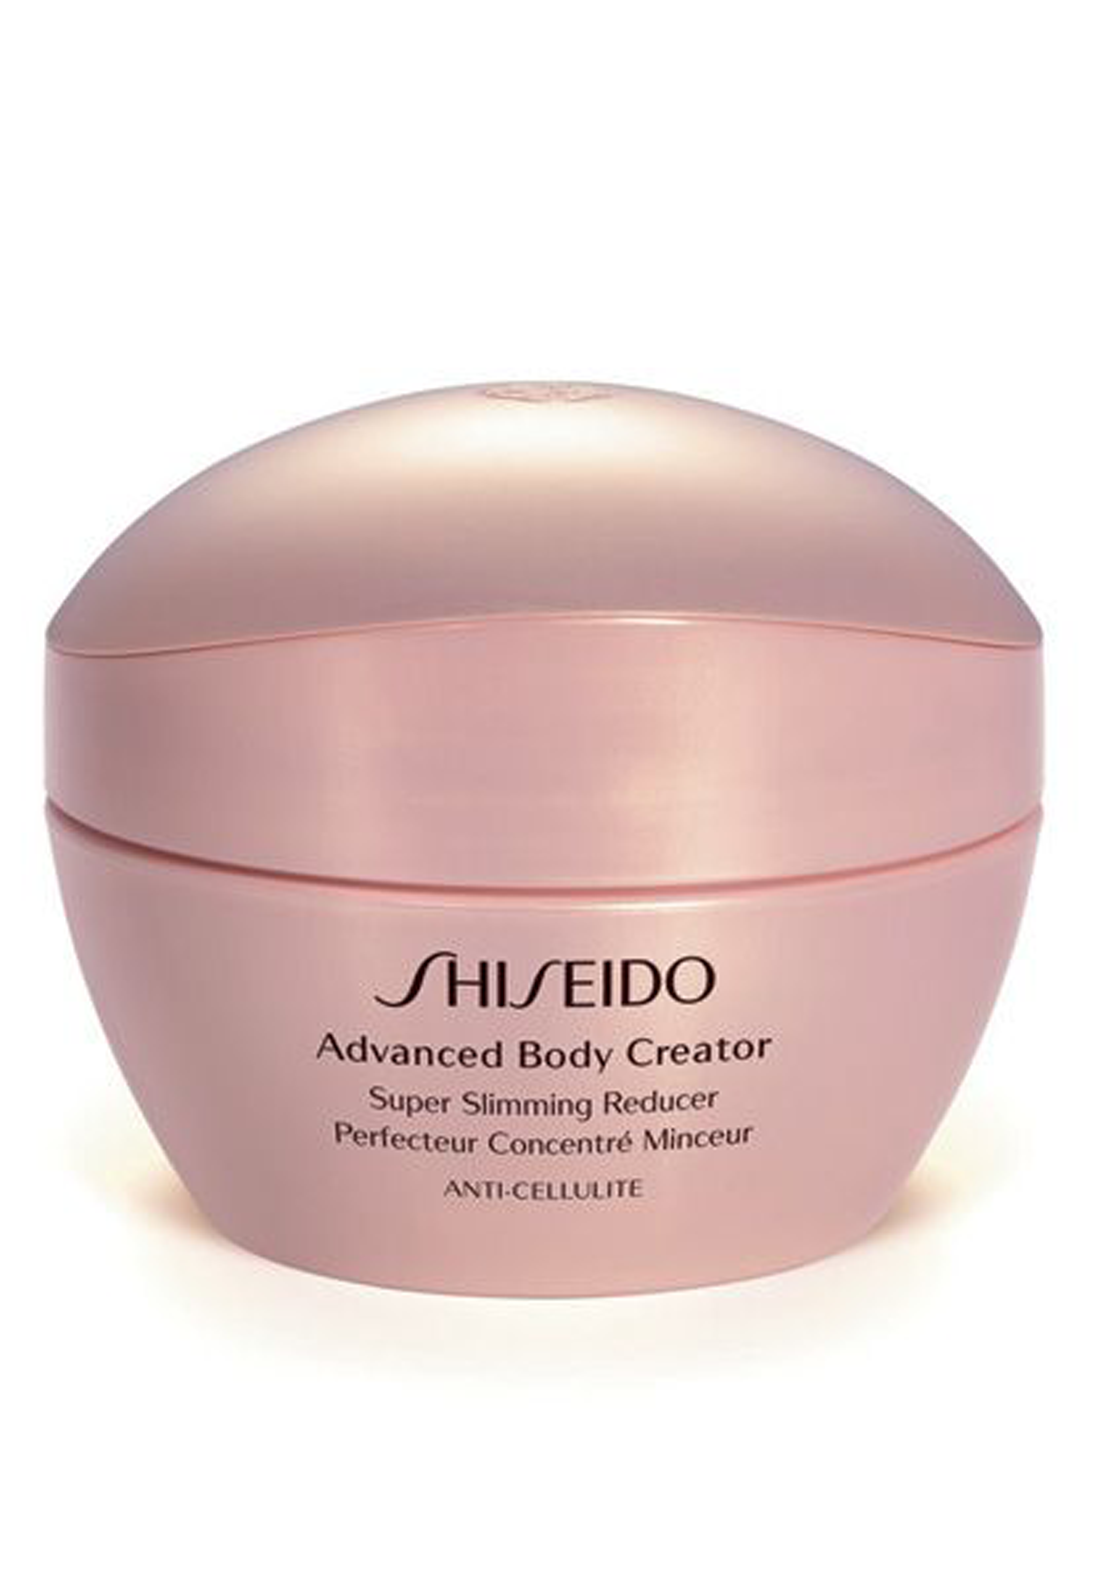 Shiseido Anti-Cellulite Super Slimming Reducer, 200ml